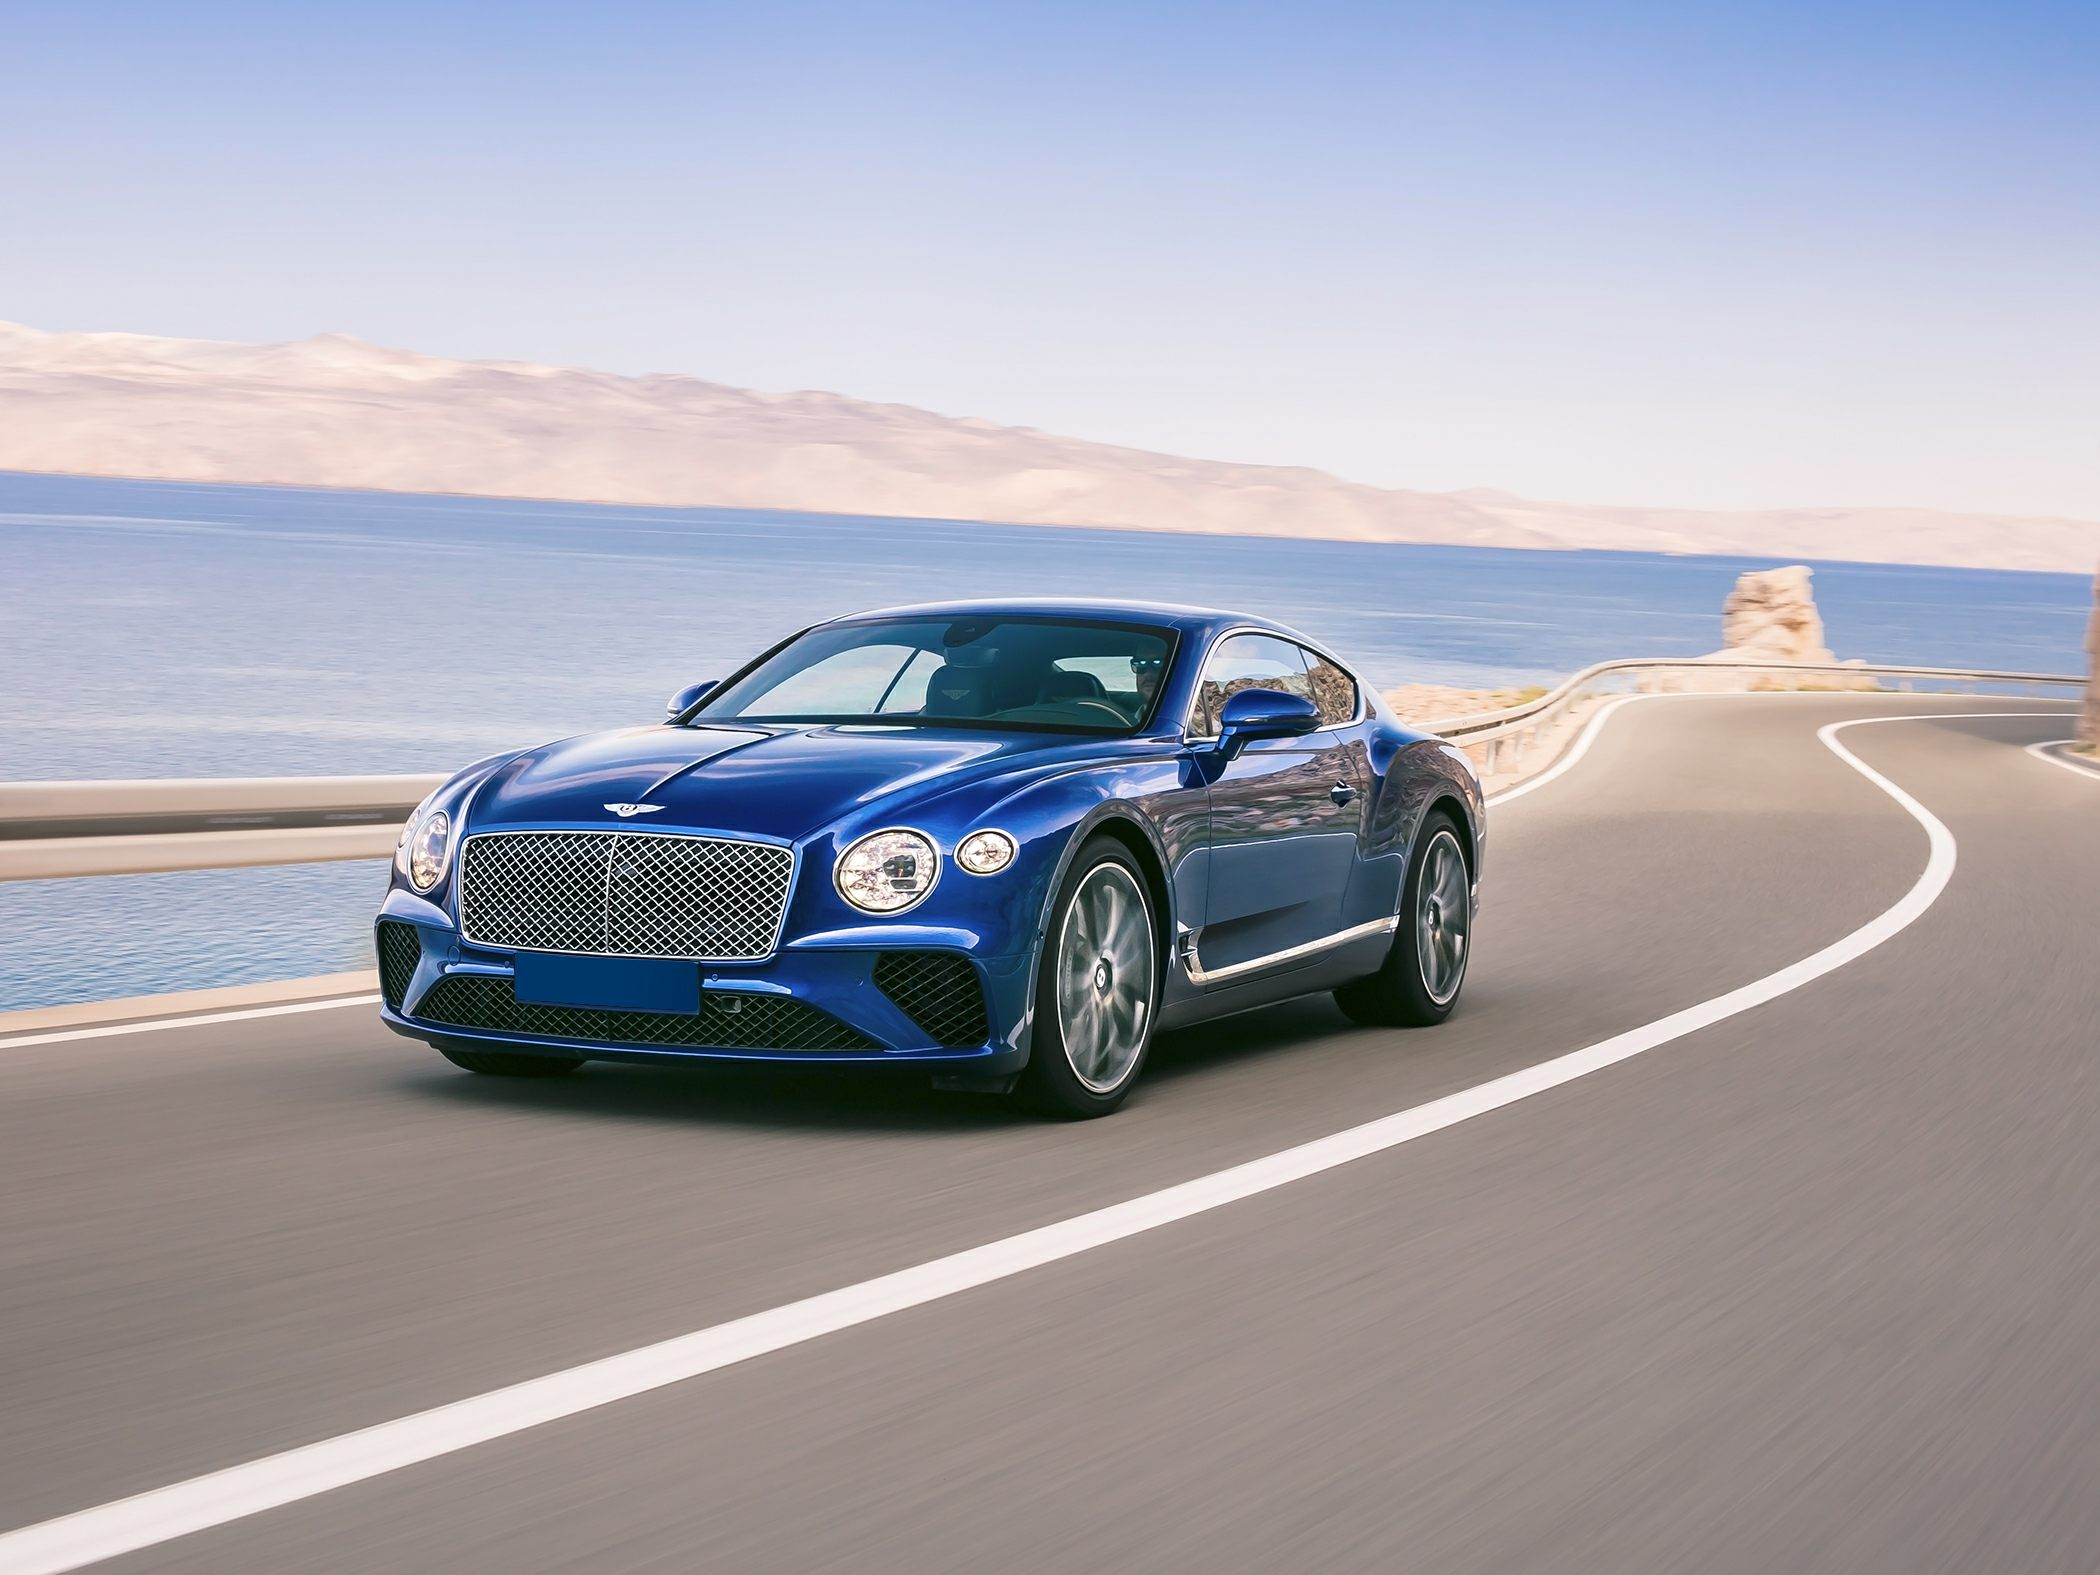 2021 Bentley Continental Gt W12 2dr All Wheel Drive Coupe Specs And Prices